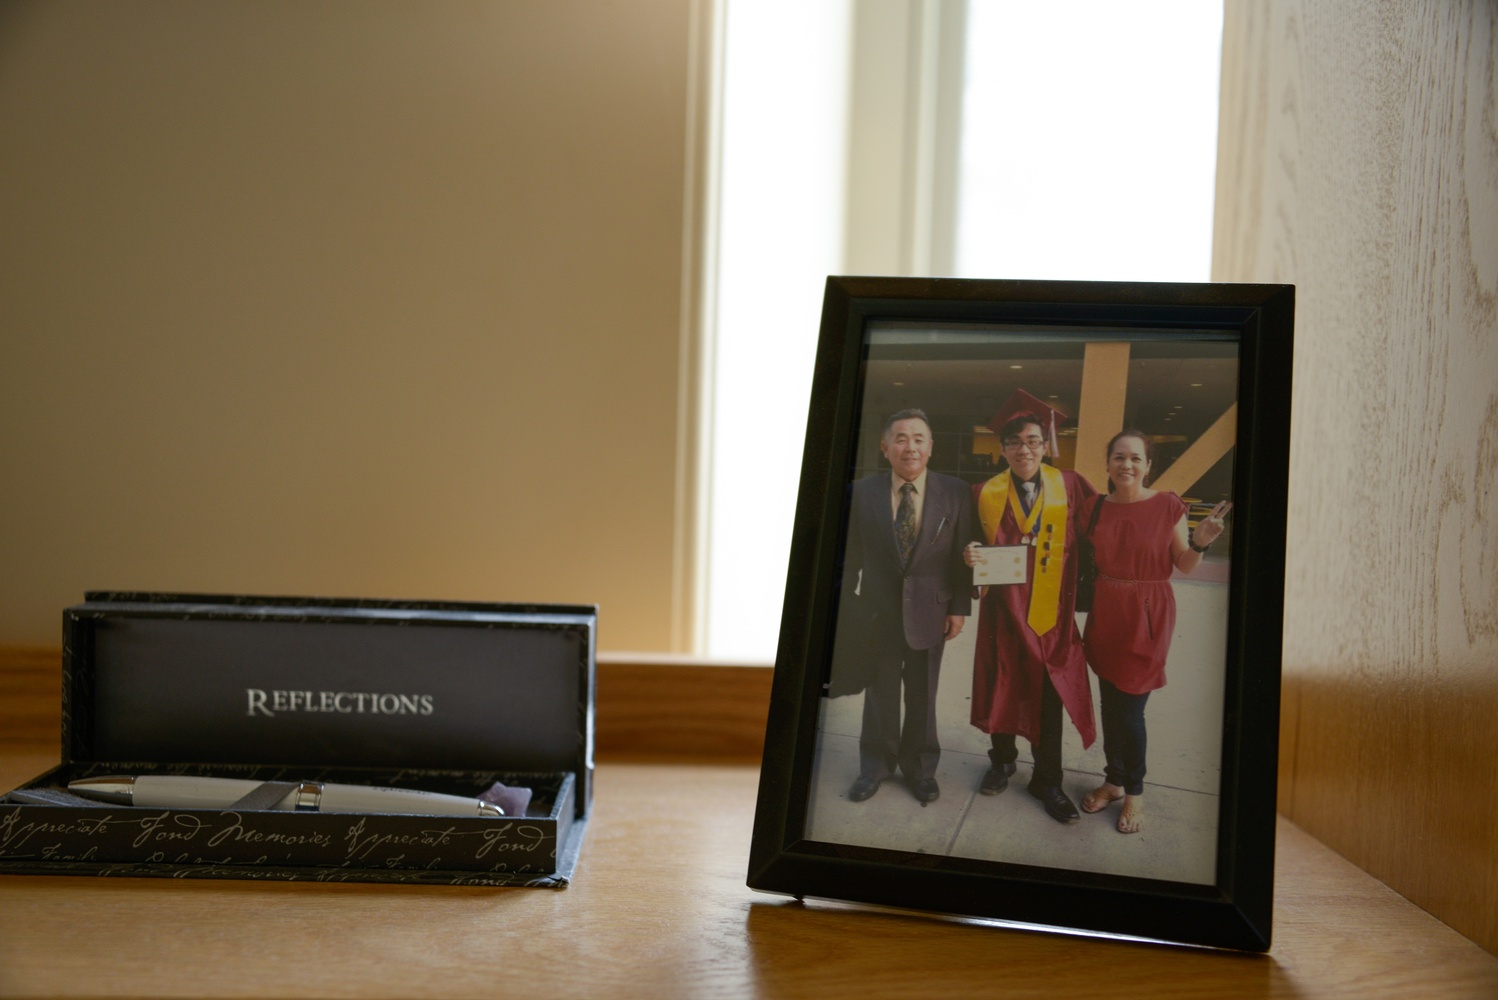 Daishi keeps memories of home, including a graduation photo with his parents and a pen, on his desk.